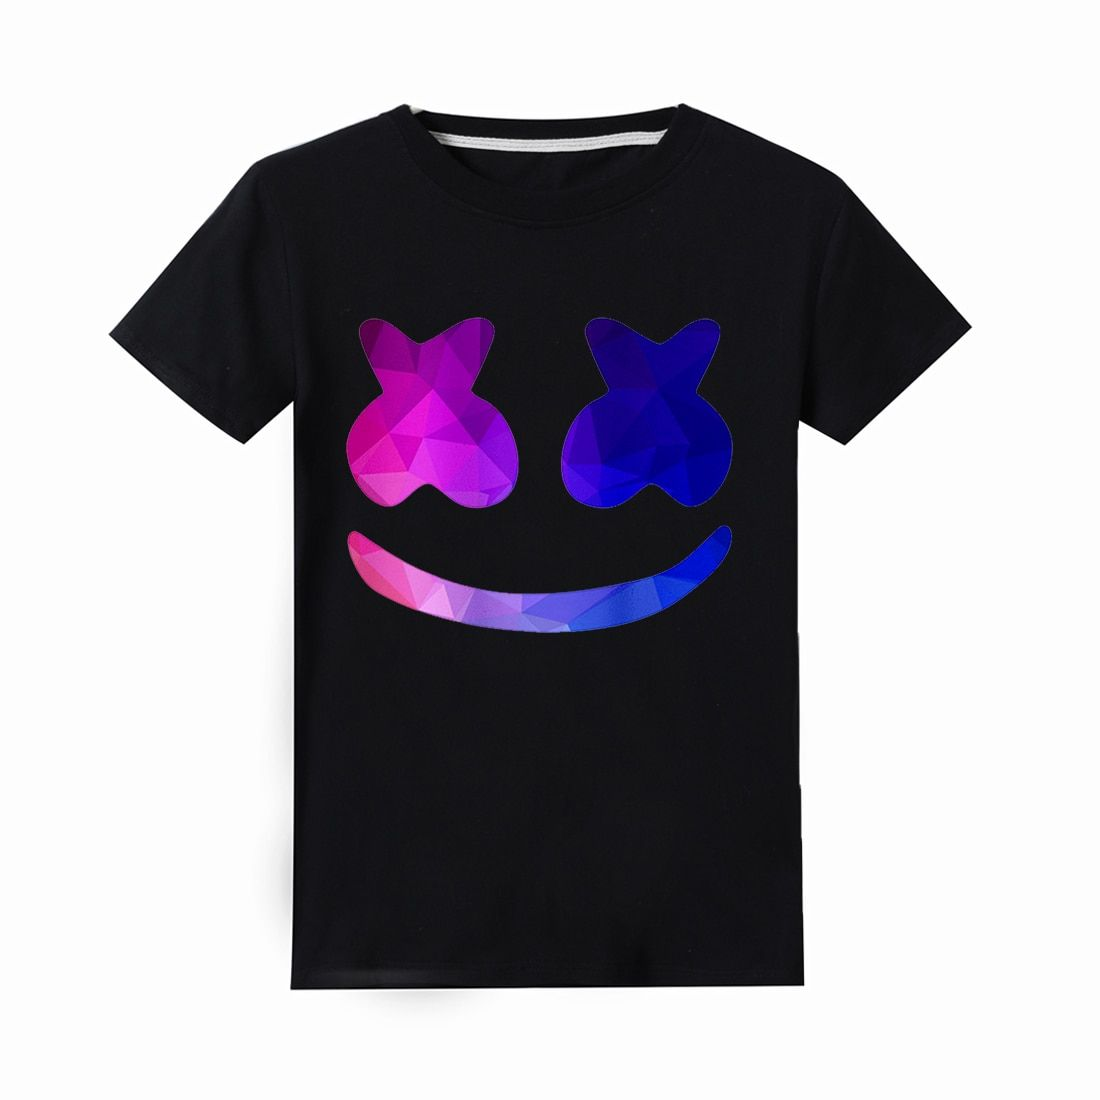 Marshmello Dj Music Clothes For Big Kids Childrens Clothing